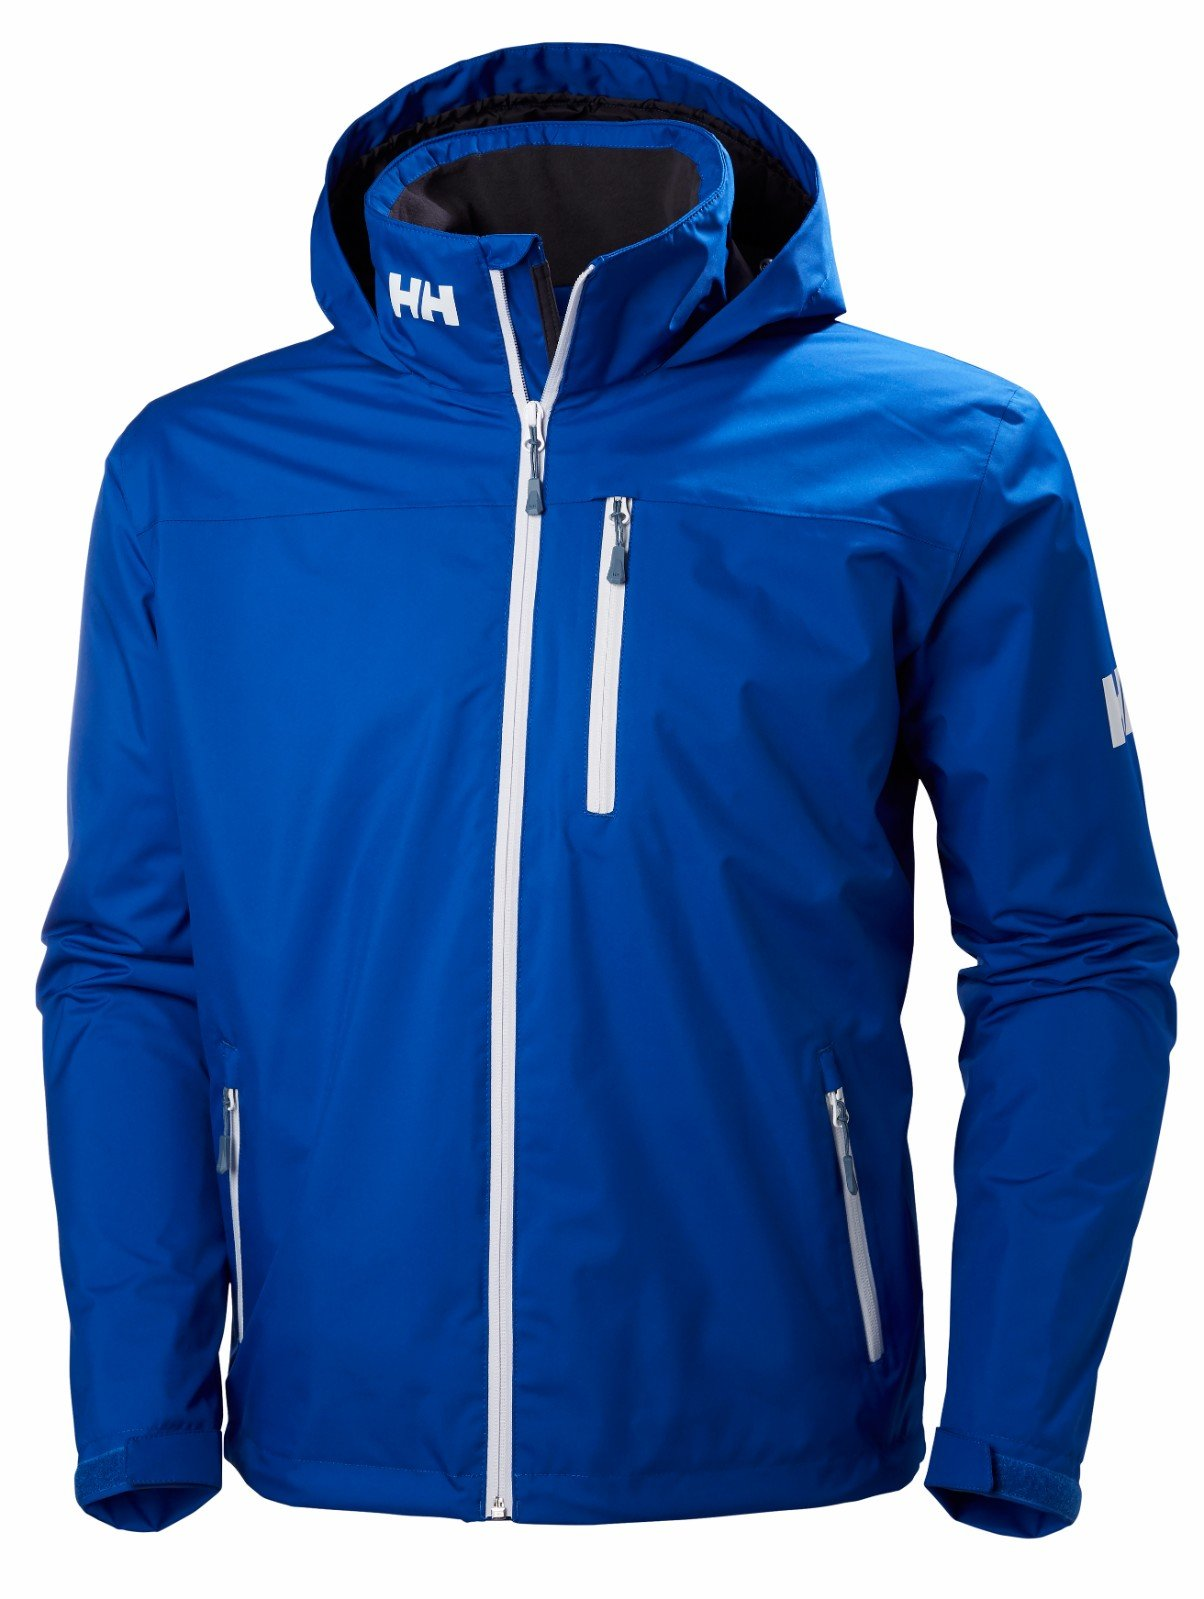 Helly Hansen Men's Crew Midlayer Fleece Lined Waterproof Windproof Breathable Sailing Rain Coat Jacket with Stowable Hood, 563 Olympian Blue, Small by Helly Hansen